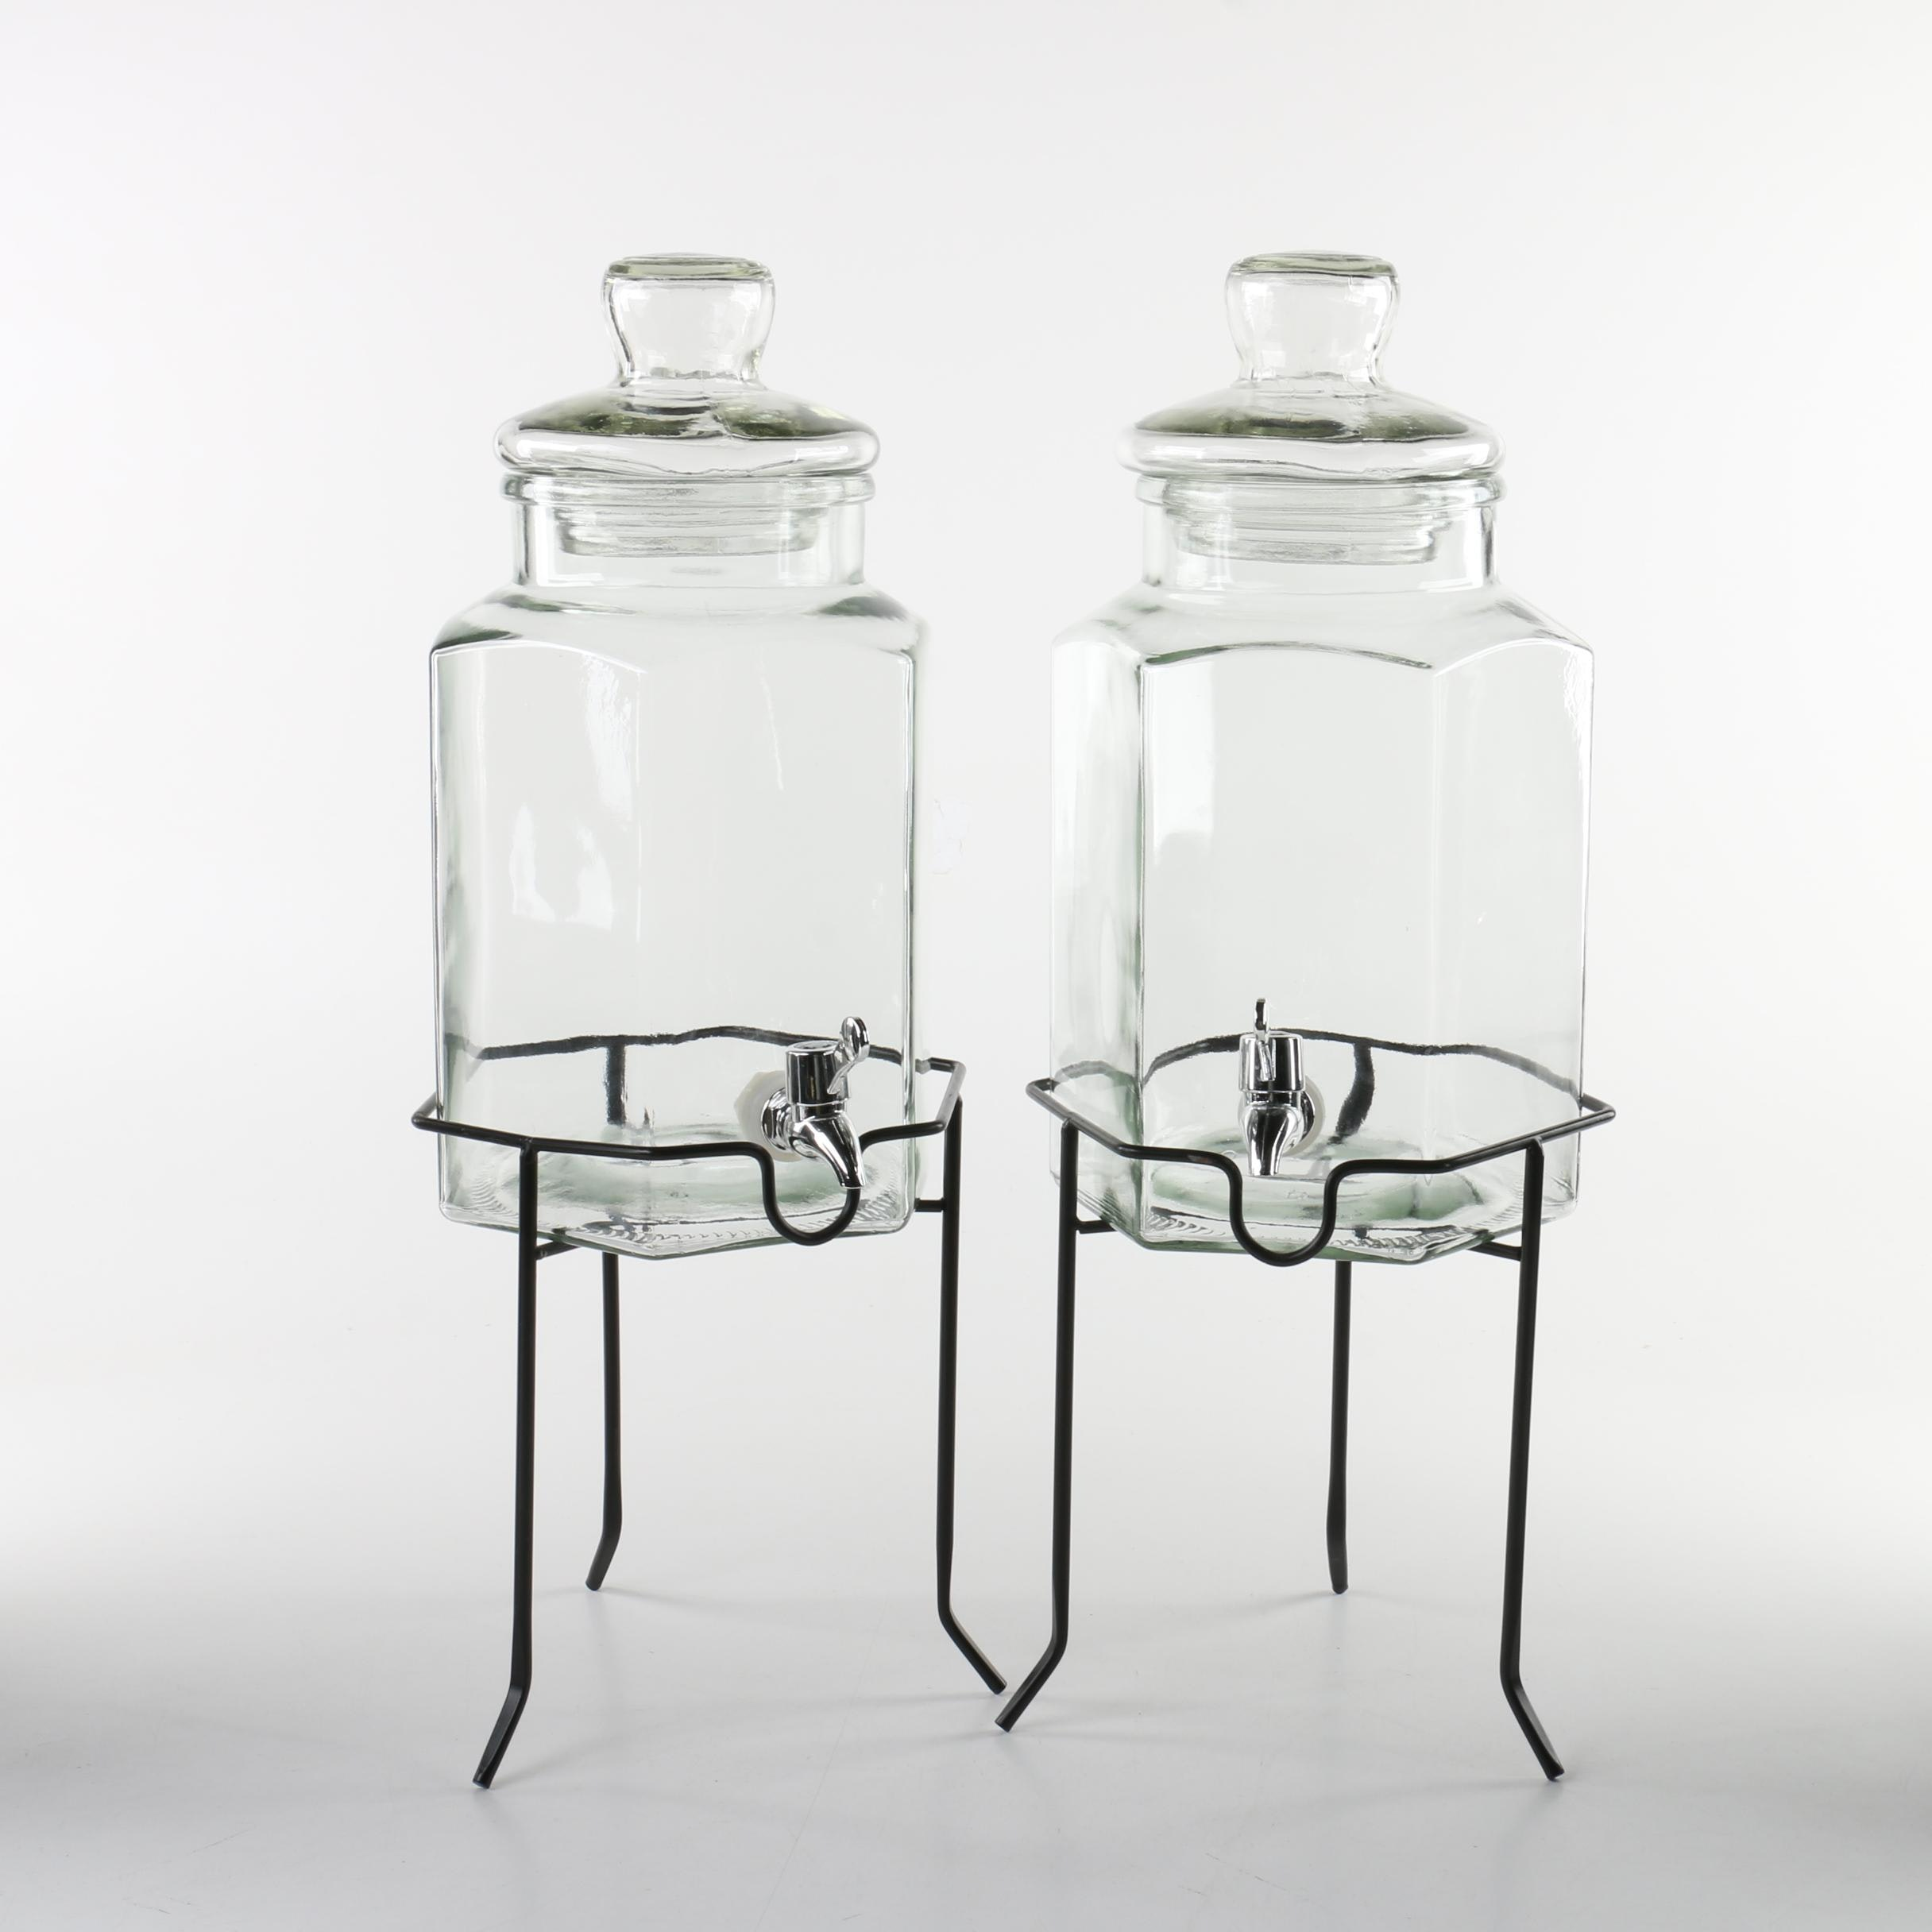 Gibson Home Beverage Dispensers with Stands